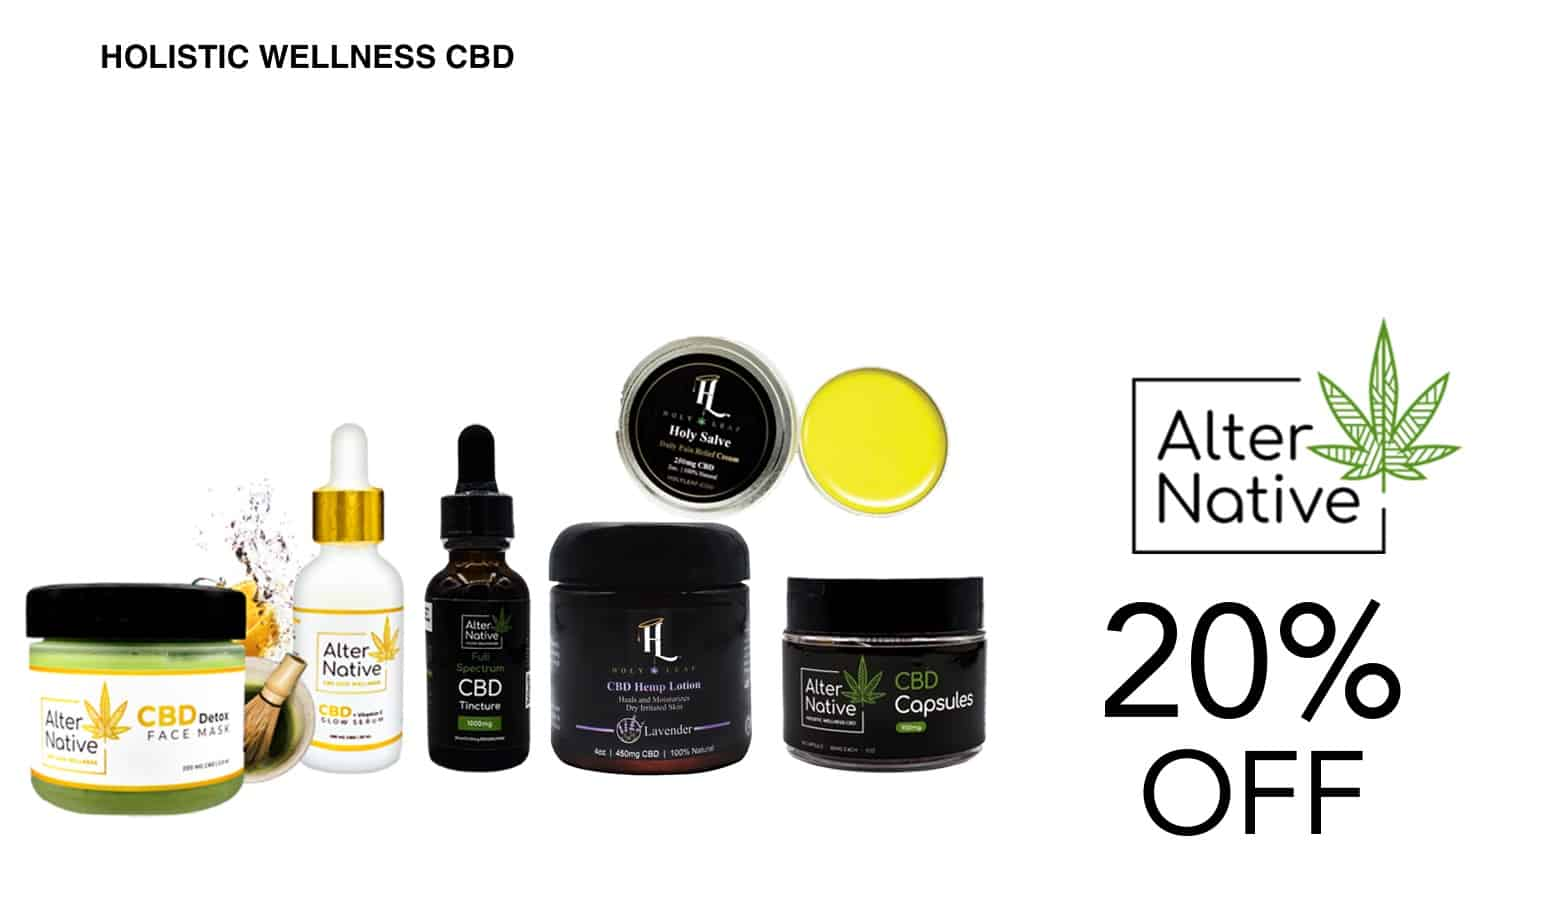 AlterNative CBD Coupon Code Offer Website